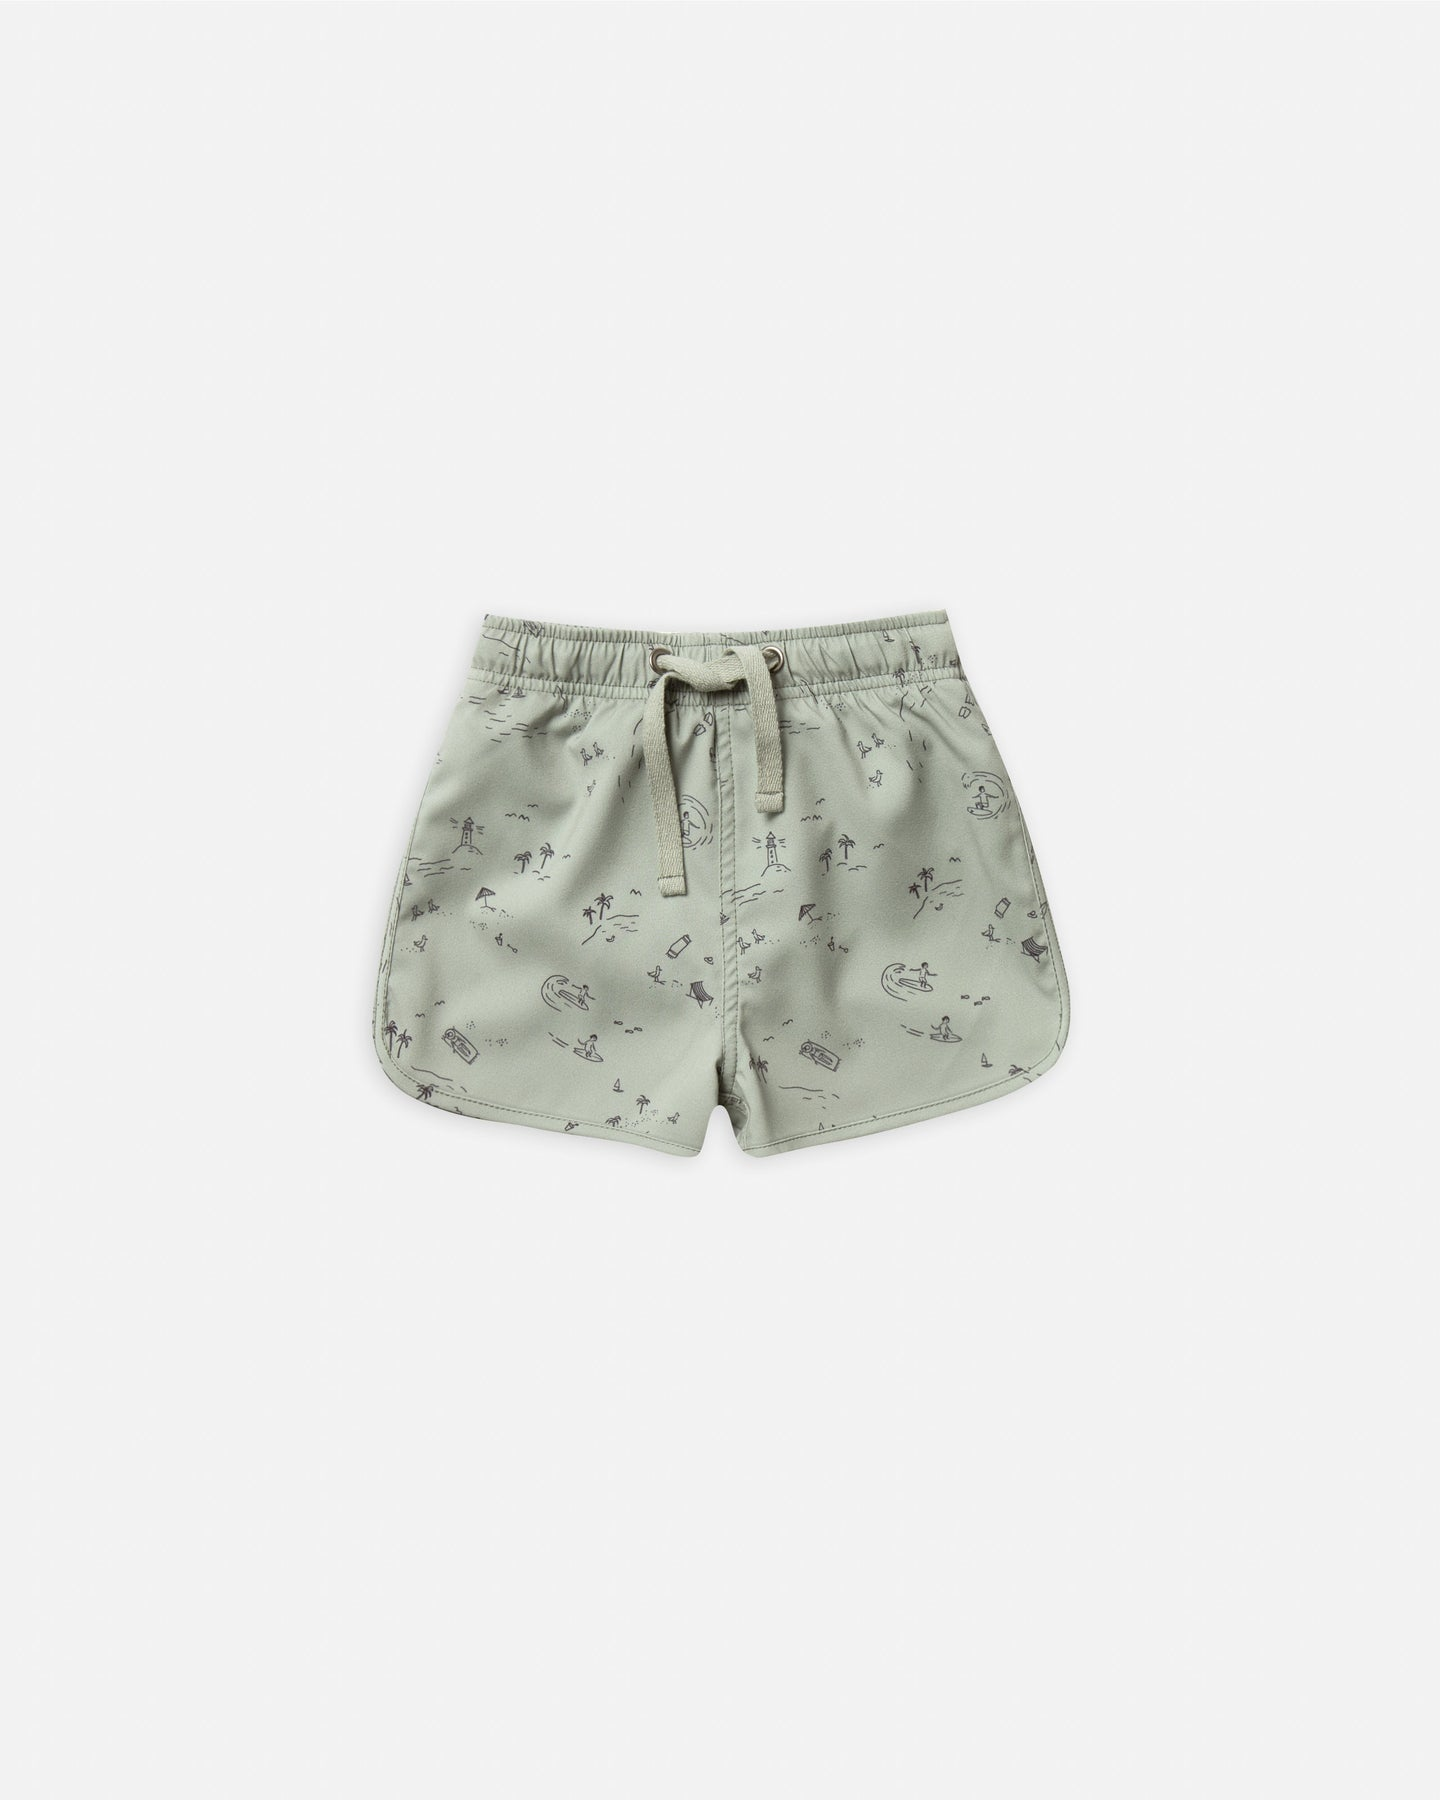 Rylee + Cru - Beach Town Swim Trunk